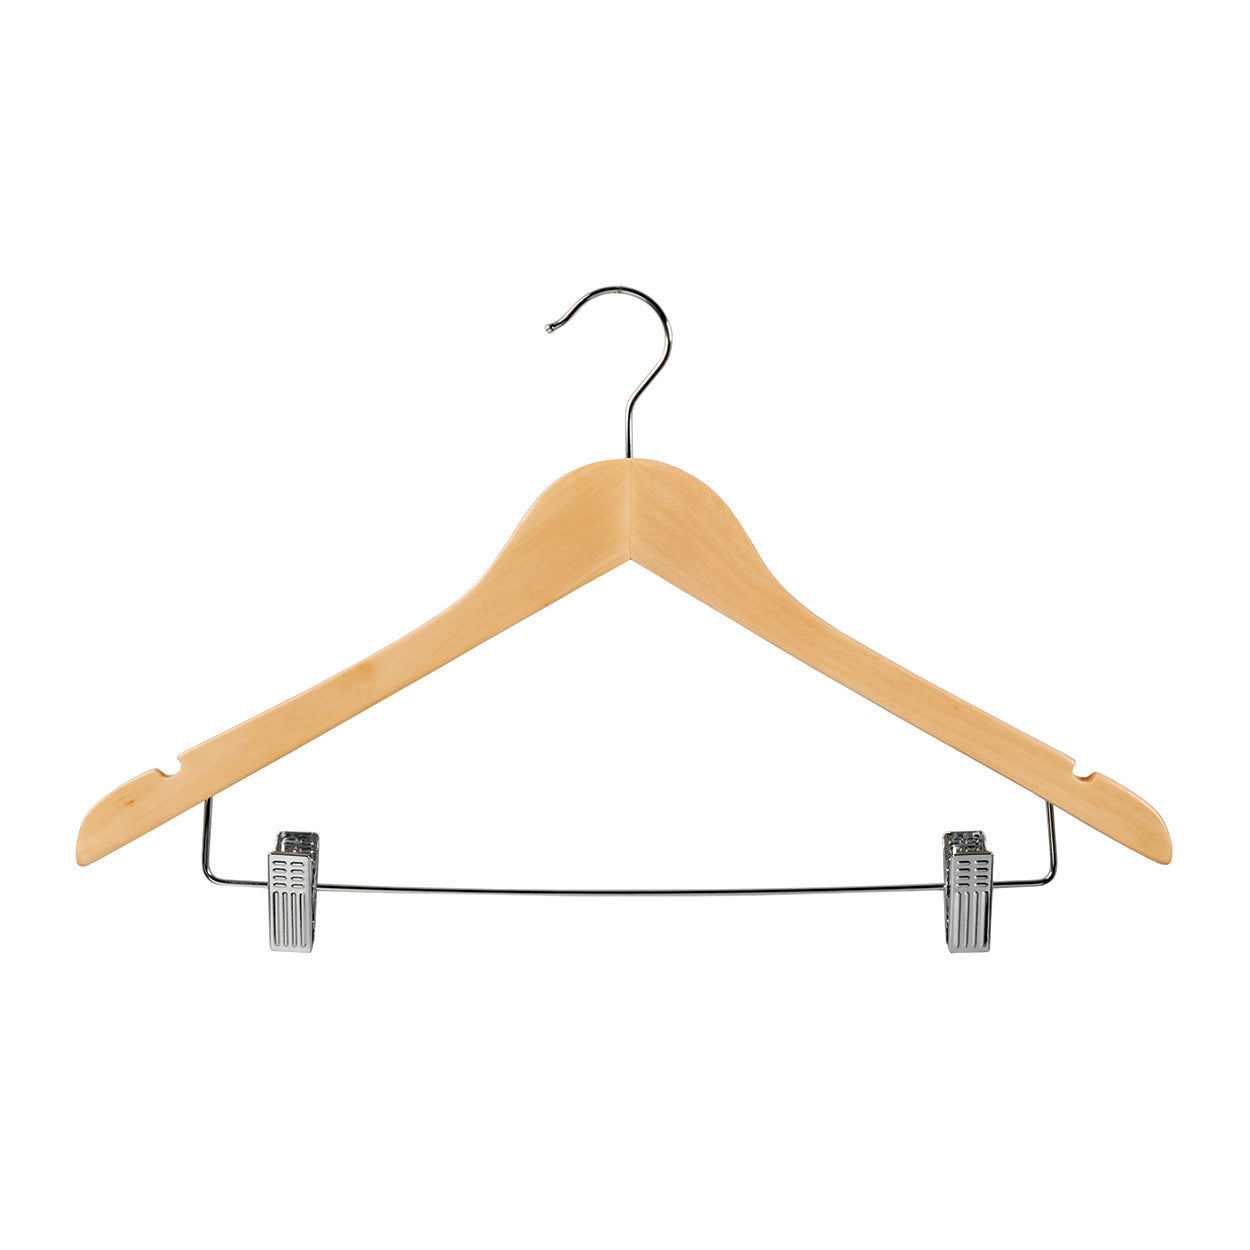 Beech Wooden hanger with notches & adjustable clips 440 W x 14 mm Thick (Bundle of 10) H2631BH-10